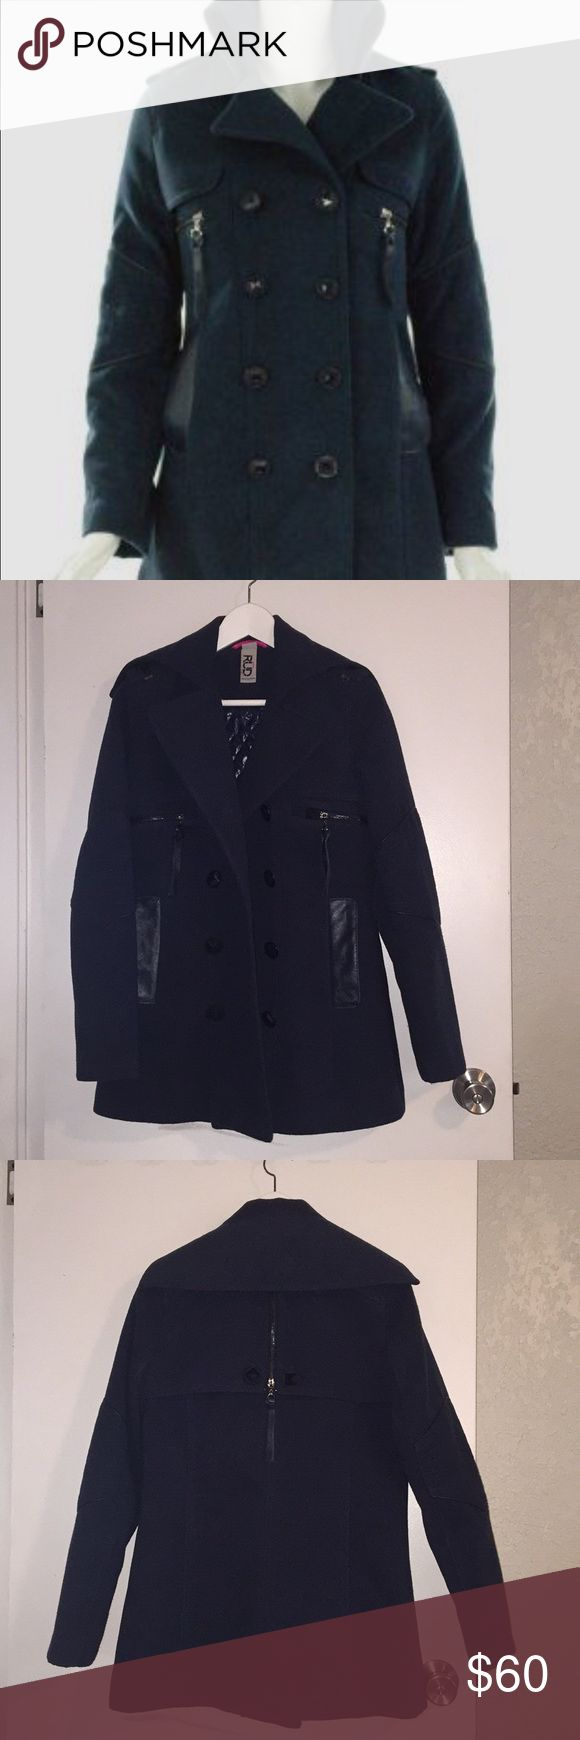 RUD by Rudsak Navy Pea coat (small) EUC This beautiful EUC Navy Pea Coat is practically brand new only worn a few times. It's a size small, I wear a size 4 dress and fits comfortably. No flaws. Lots of pockets and cute details. Feel free to make me an offer 🤗 RUDSAK Jackets & Coats Pea Coats